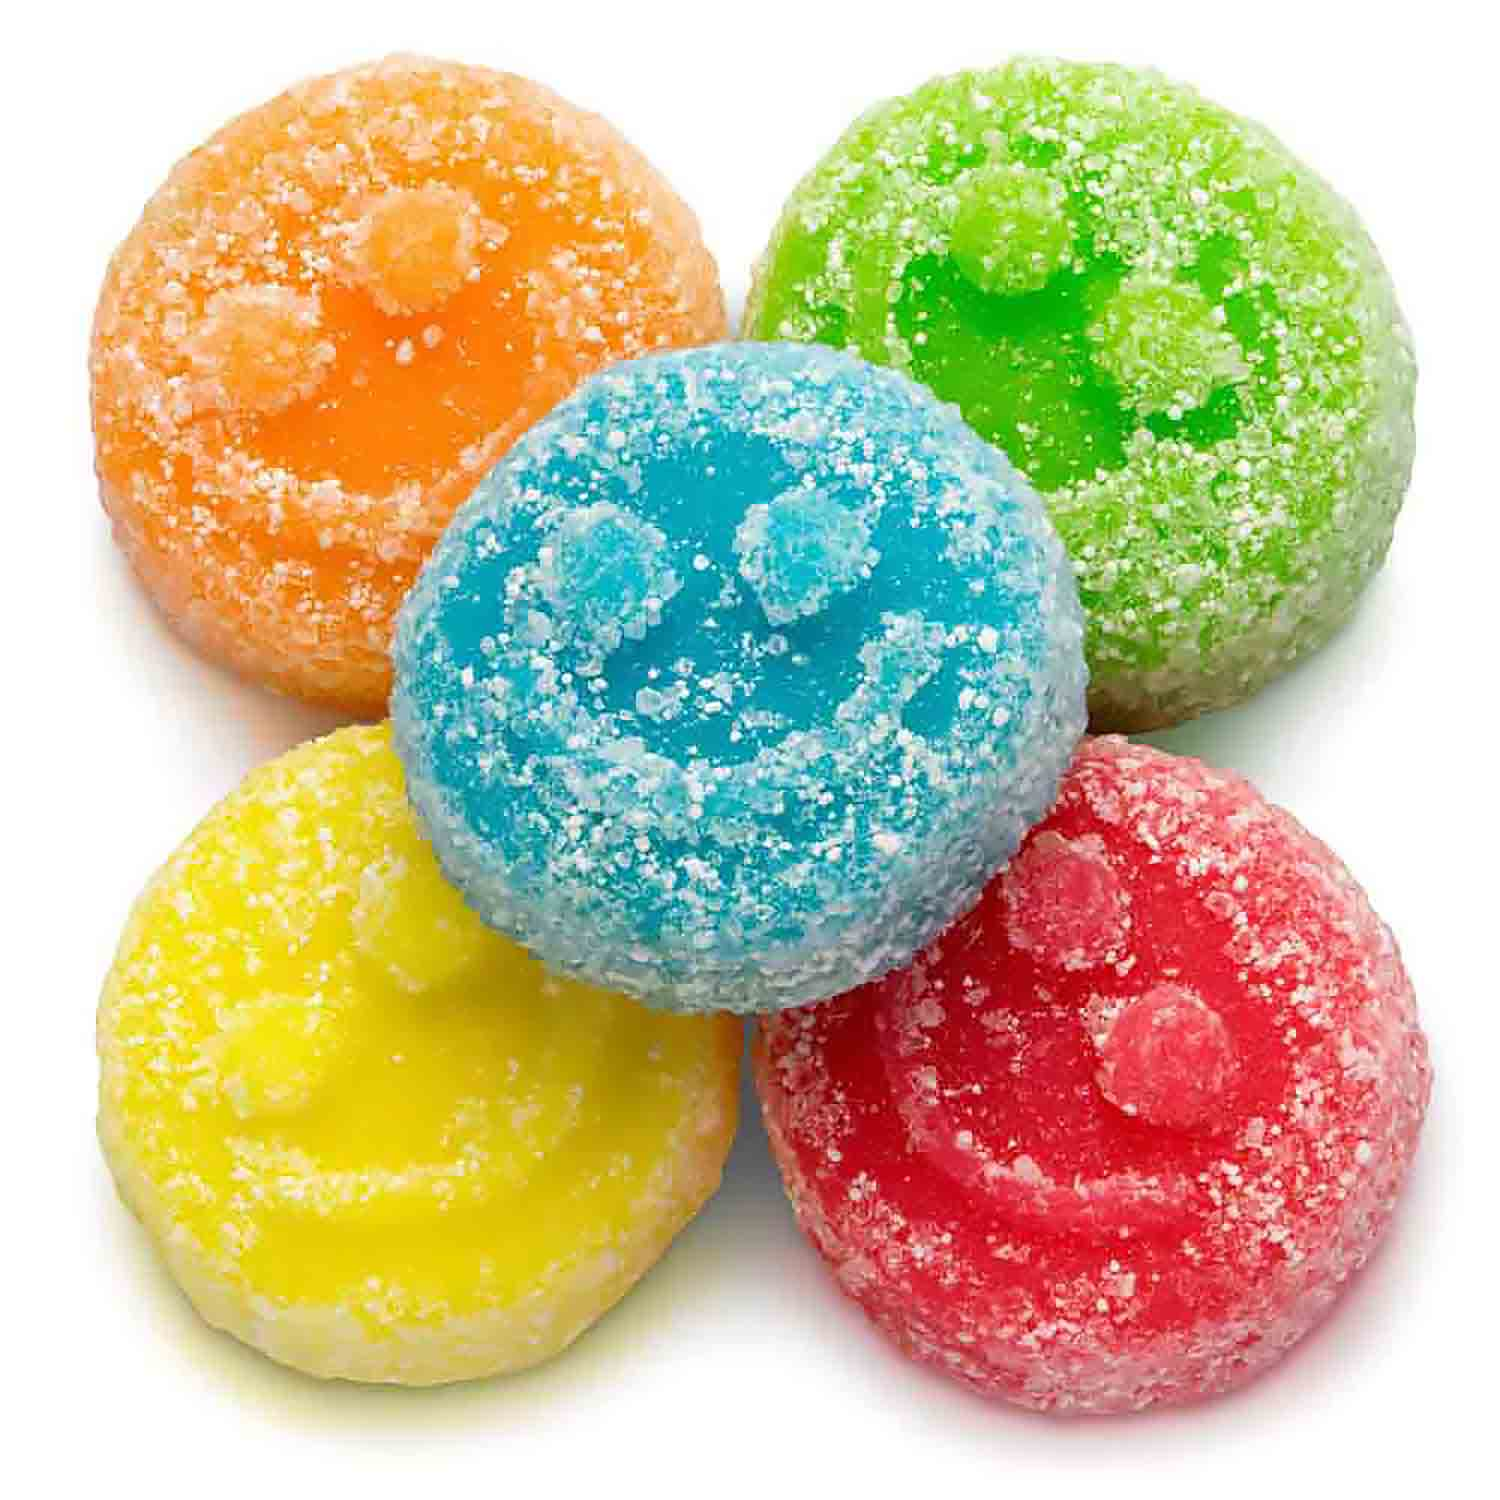 Sour Poppers Smiley Face Gummies